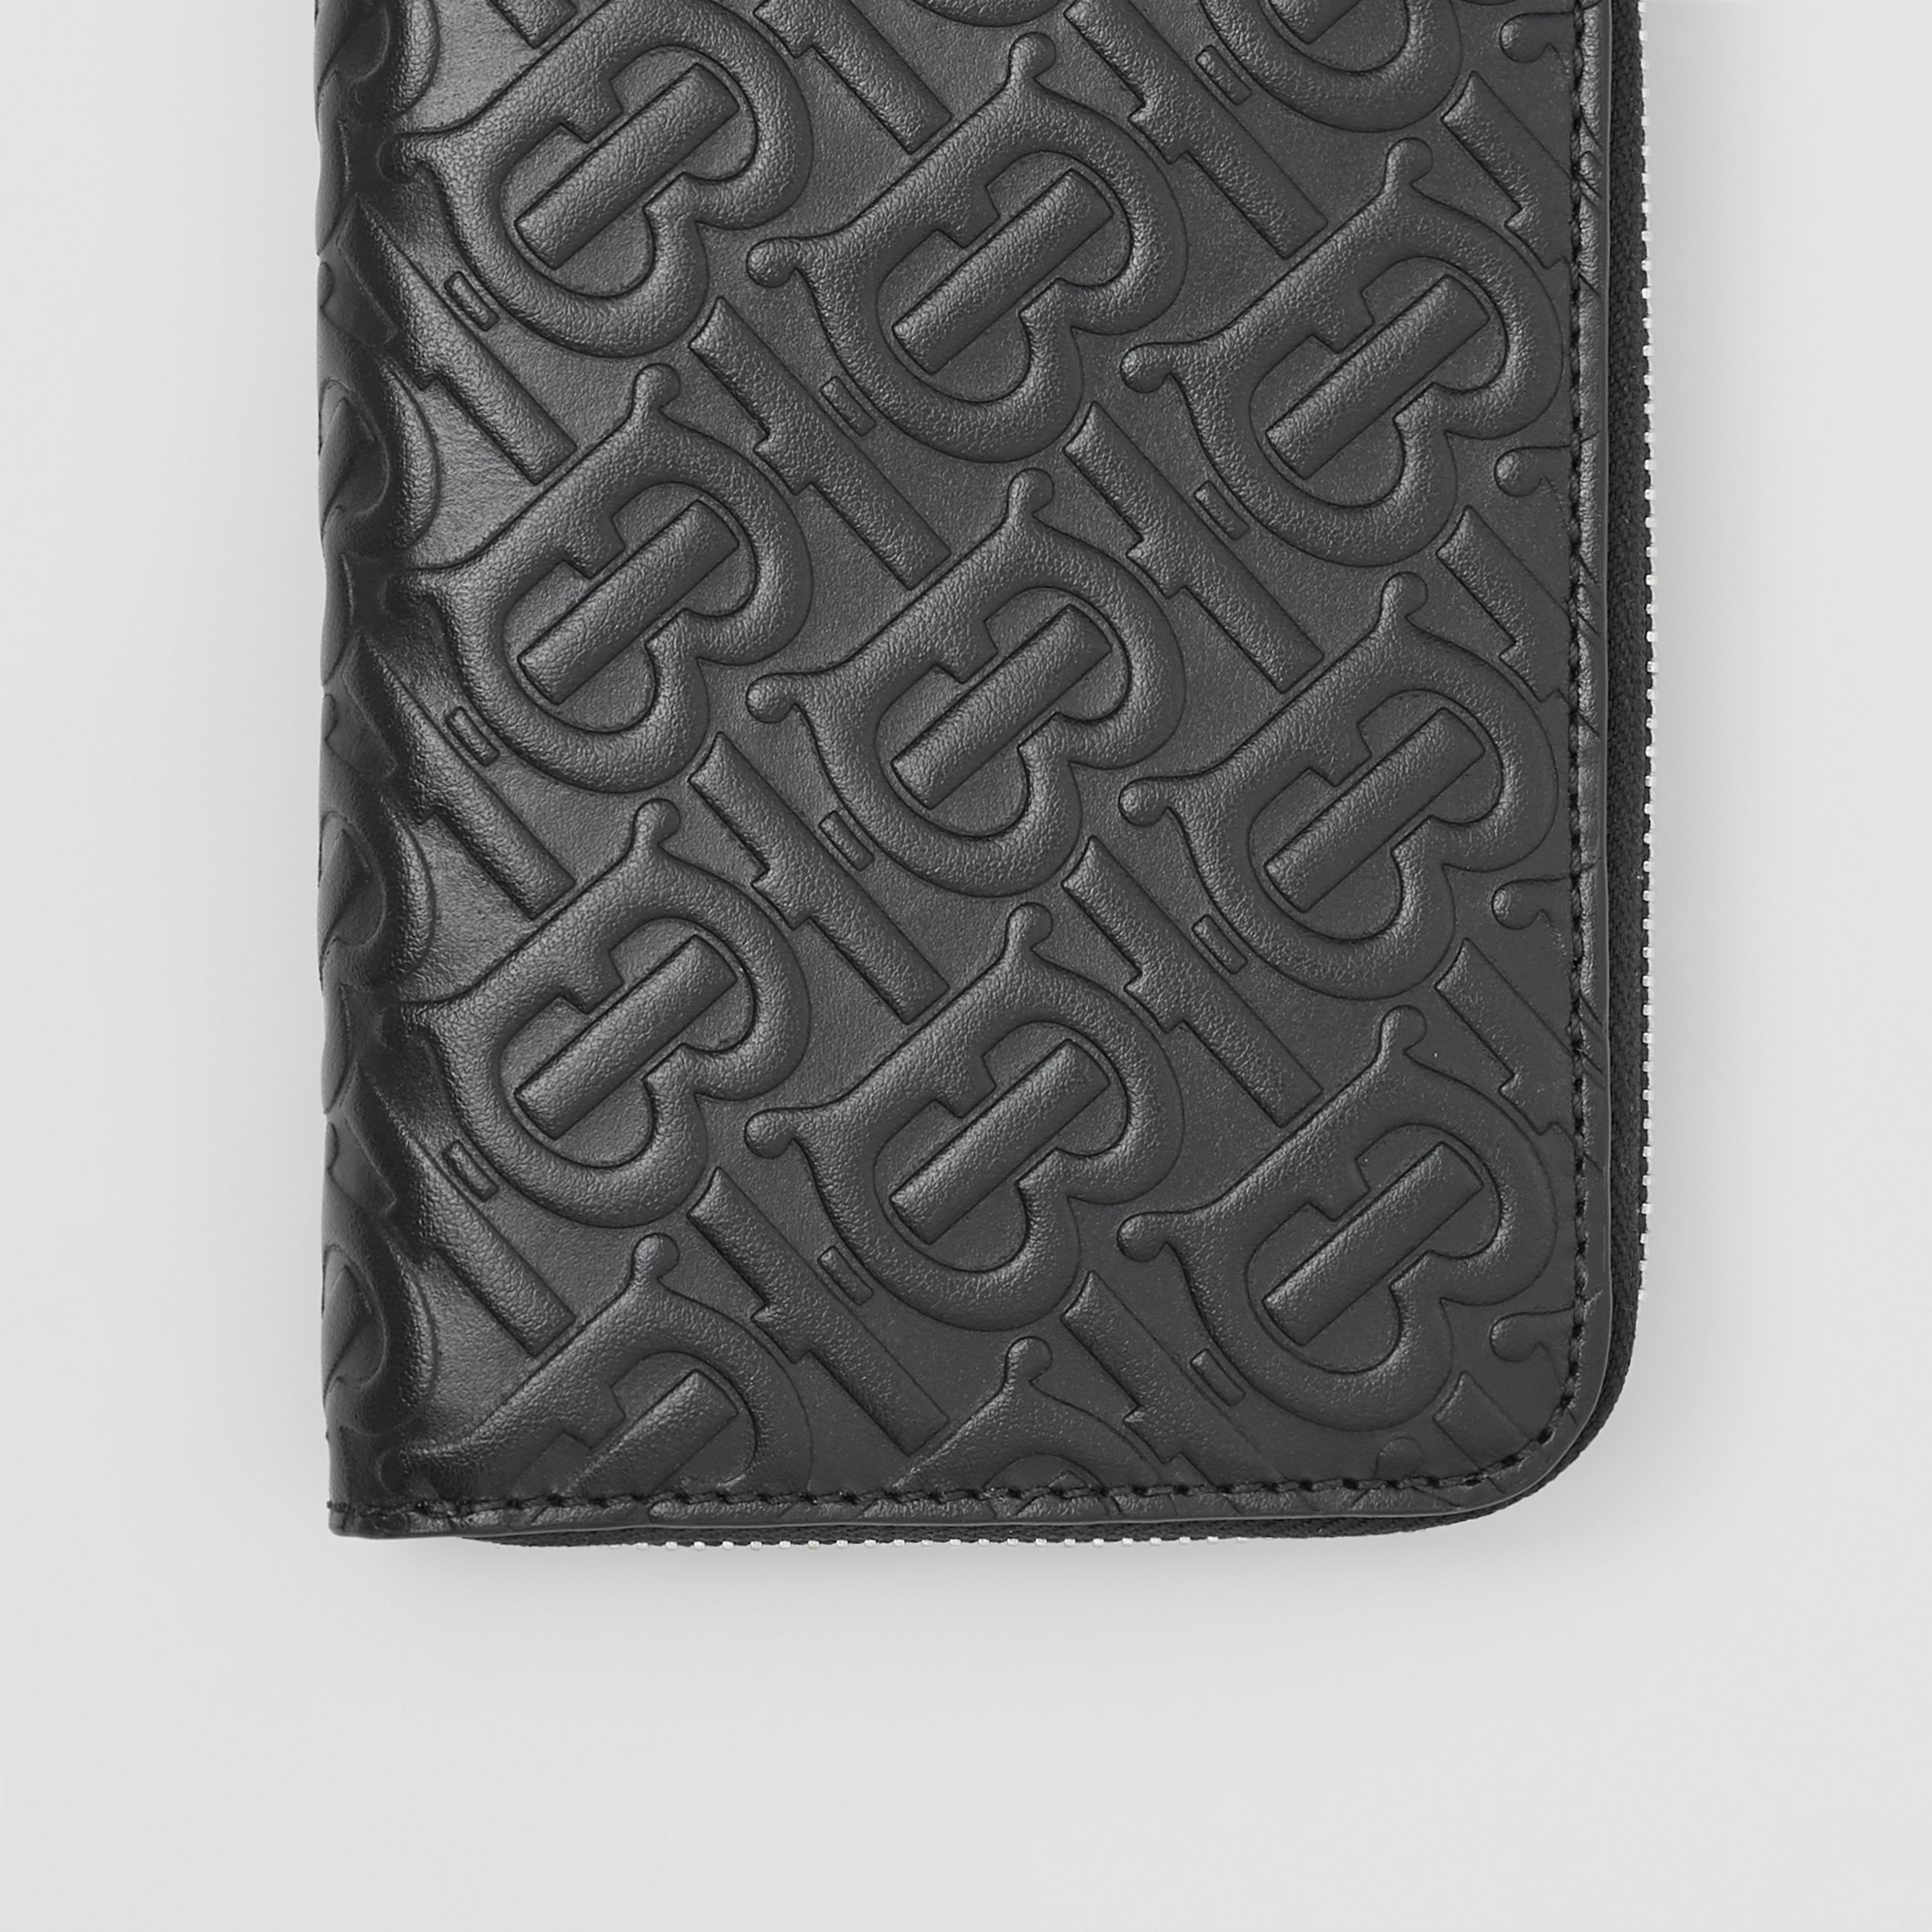 Monogram Leather Ziparound Wallet in Black - Men | Burberry - 2